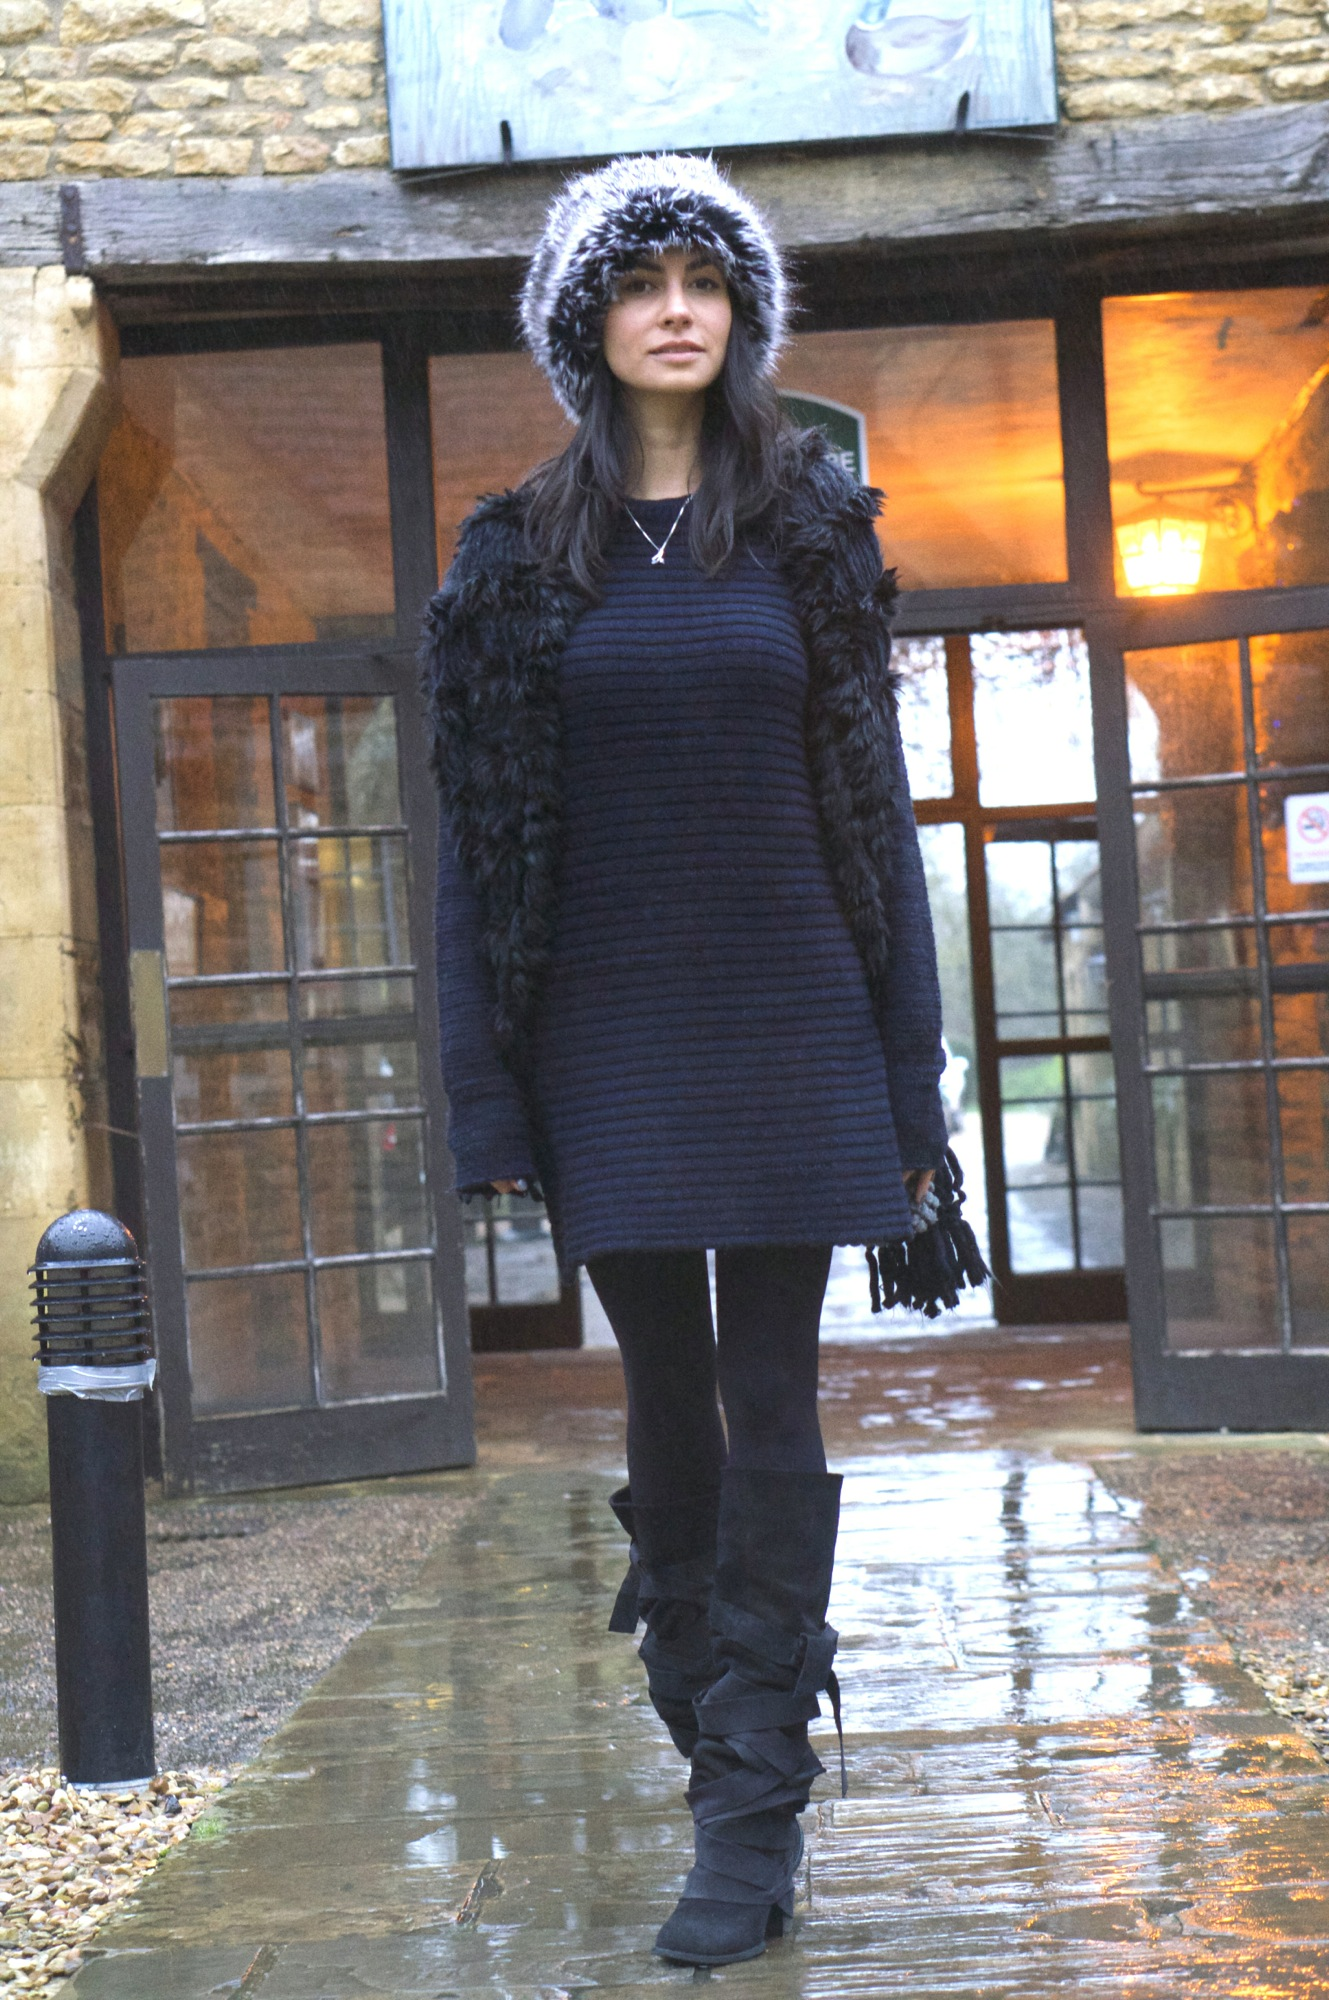 winter wonderland warm wool dresses-2